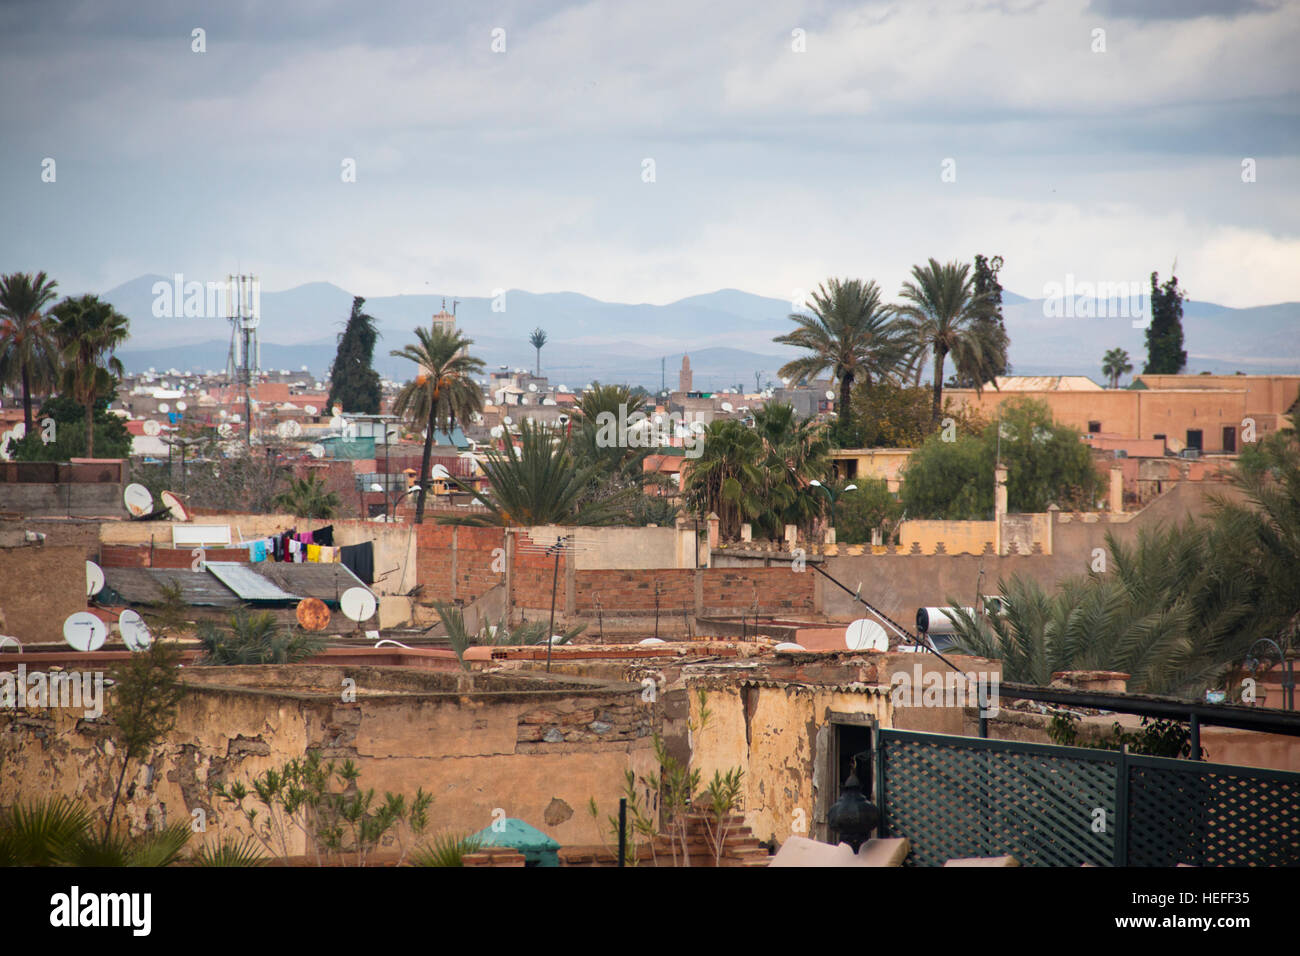 View over the city of Marrakesh in Morocco Stock Photo